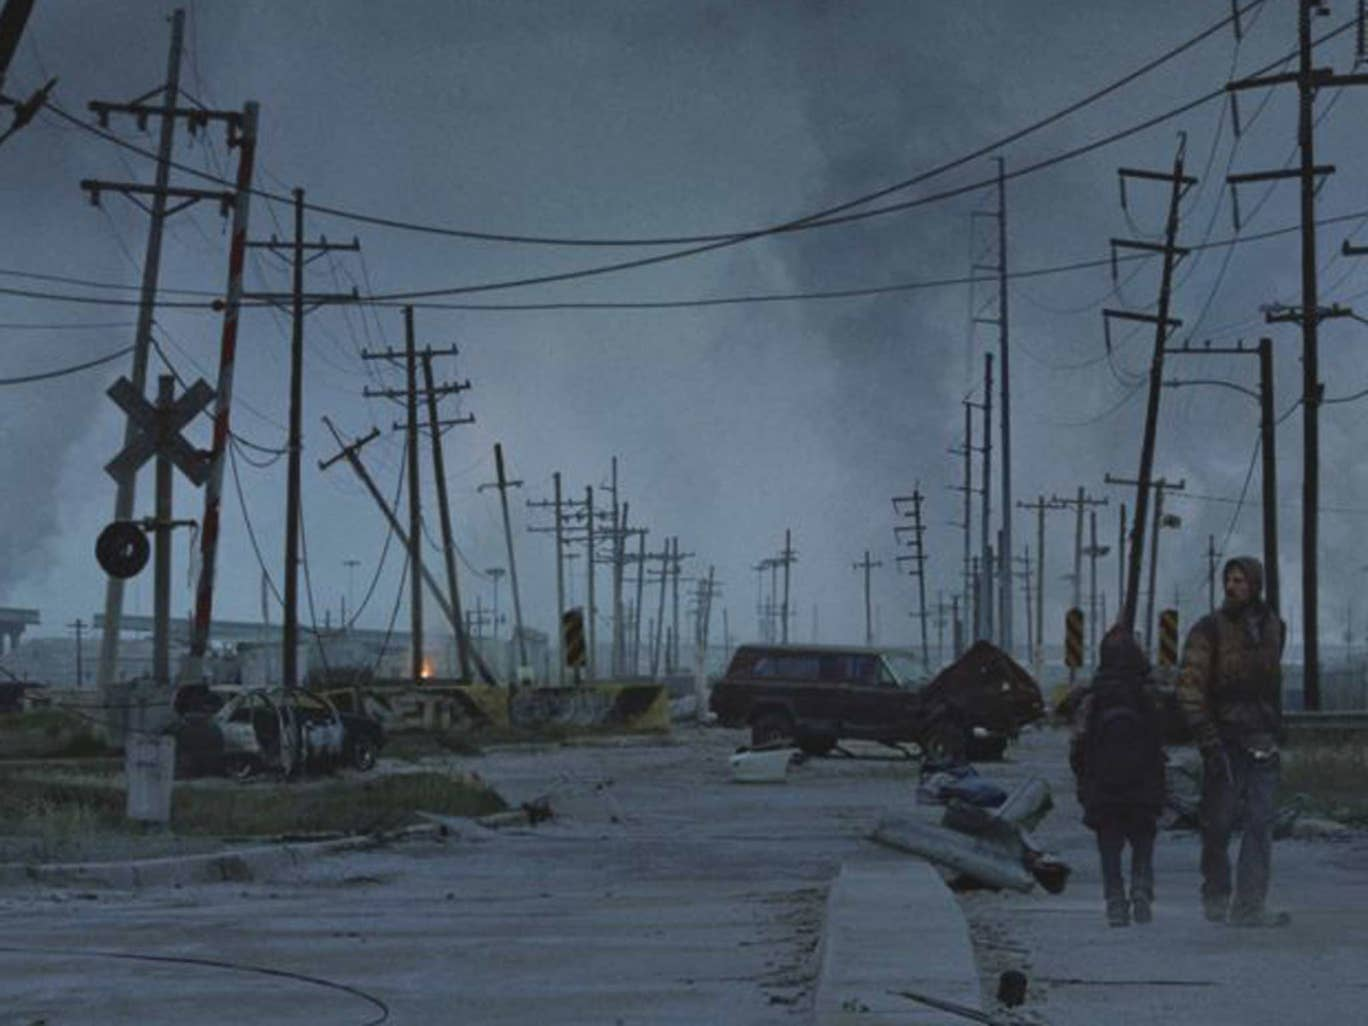 Apocalypse now? a scene from the film of Cormac McCarthy's 'The Road'